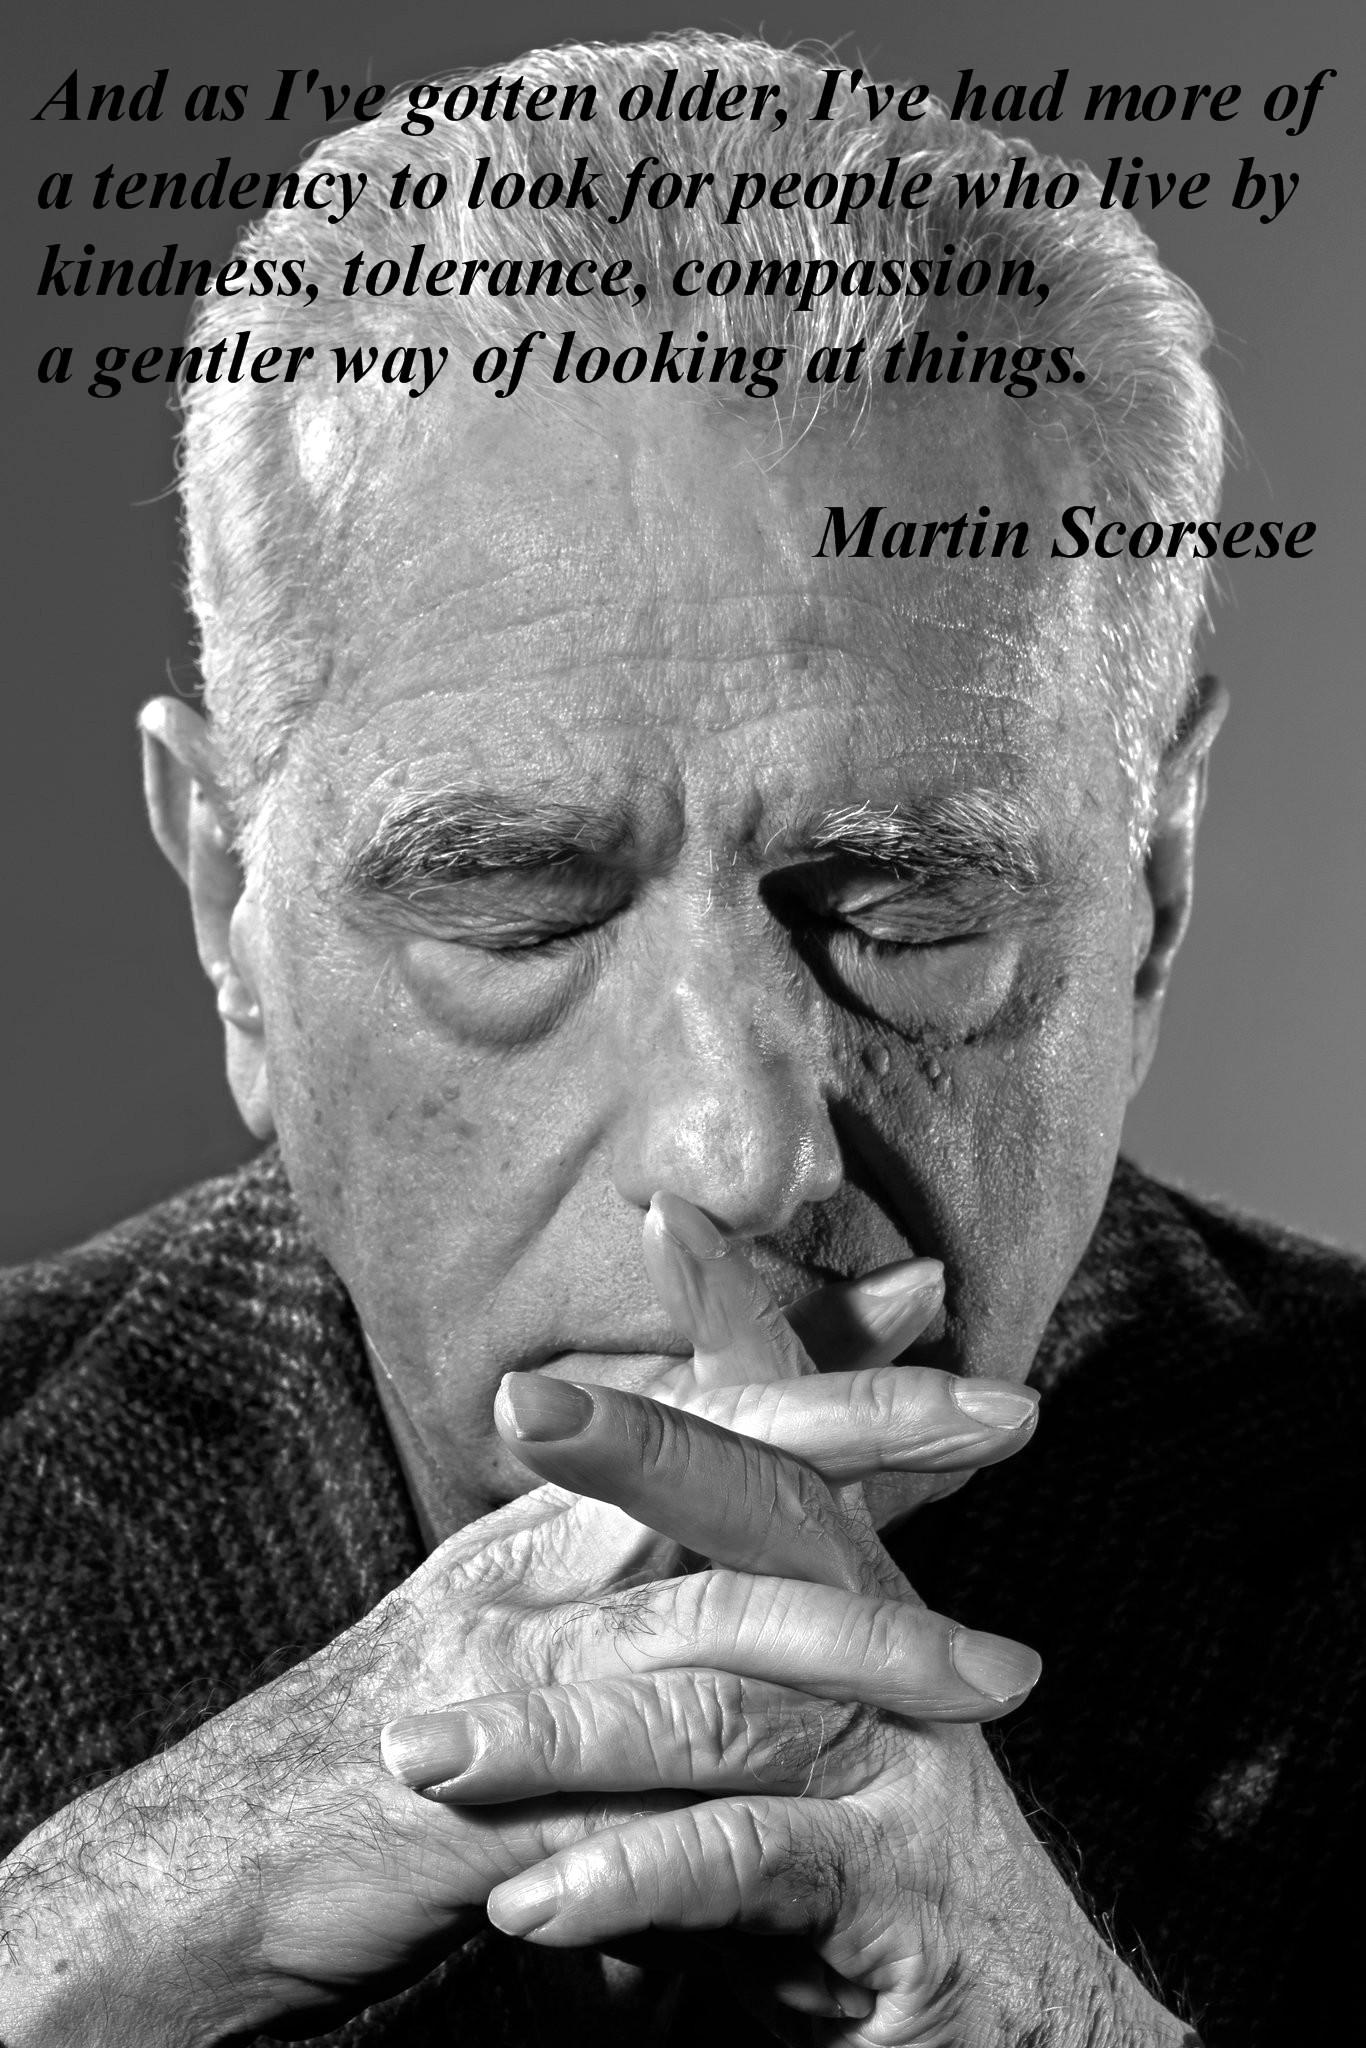 And as I've gotten older… Martin Scorsese (1366×2048)